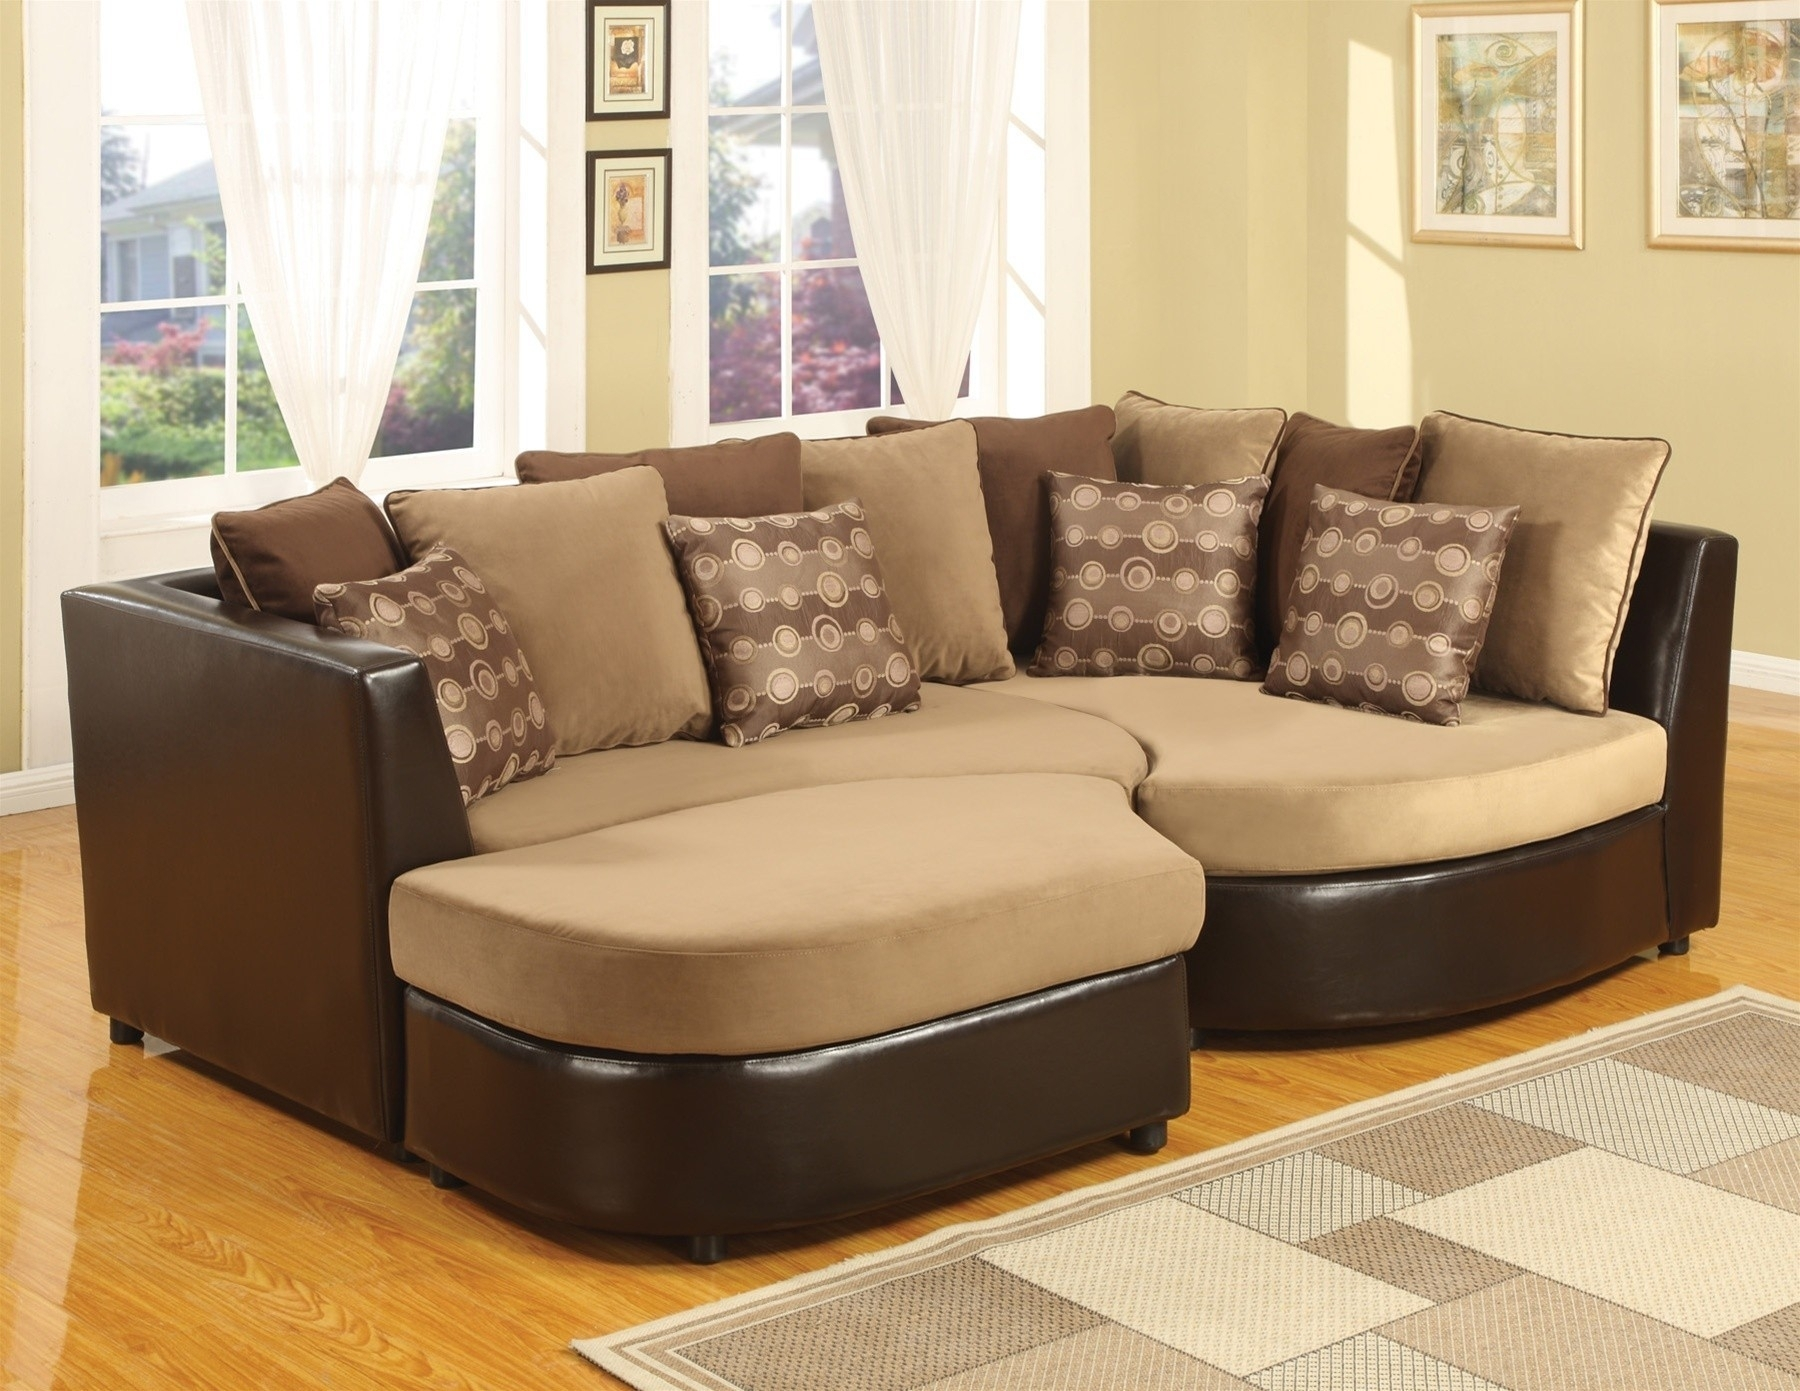 Innovative Amazon Sectional Sofas Or Leather Futon Sofa Bed As Well Pertaining To Sectional Sofas At Amazon (View 11 of 15)